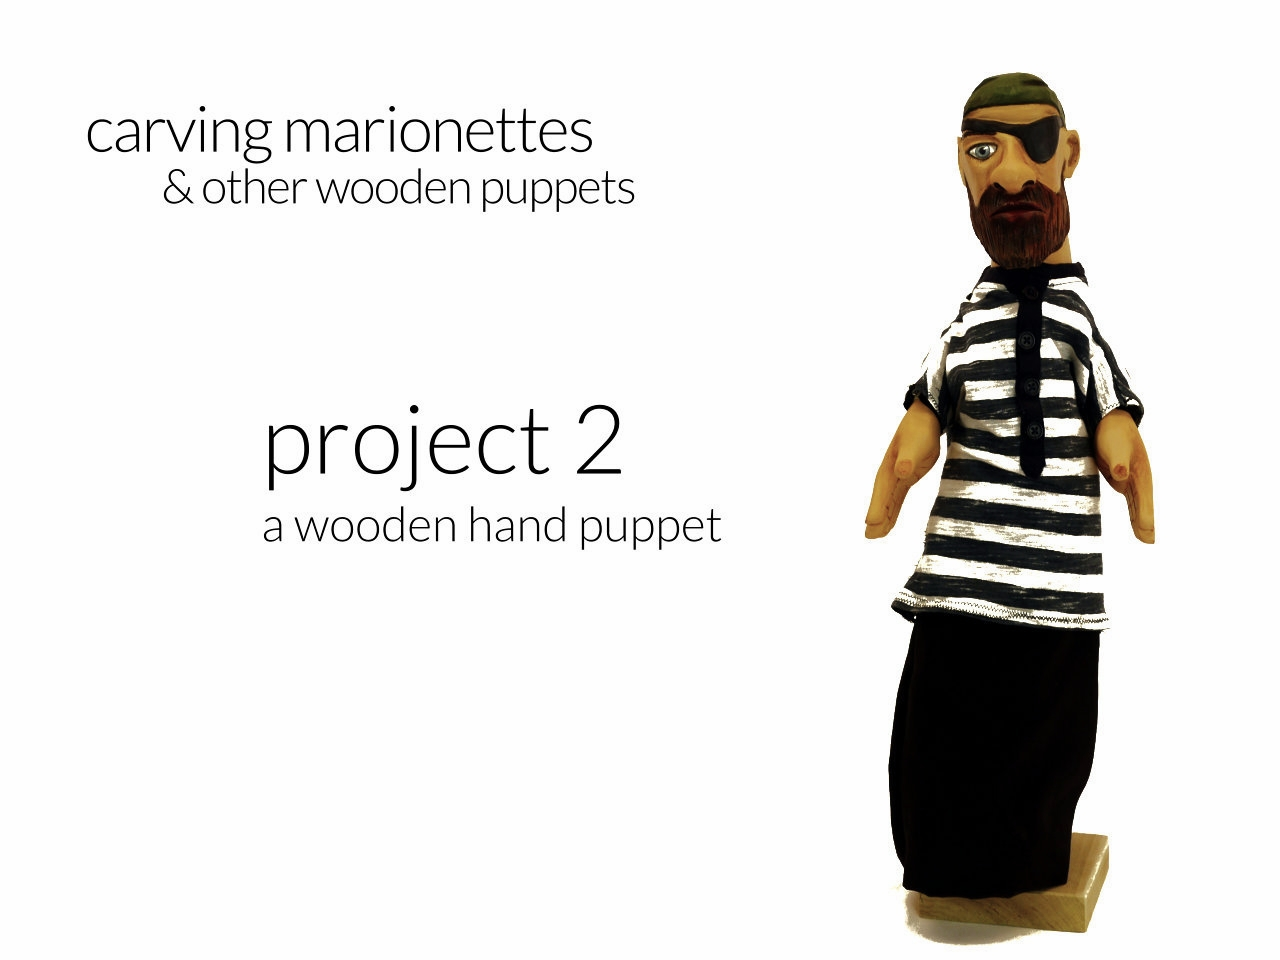 www.carvingpuppets.com - make a wooden hand puppet